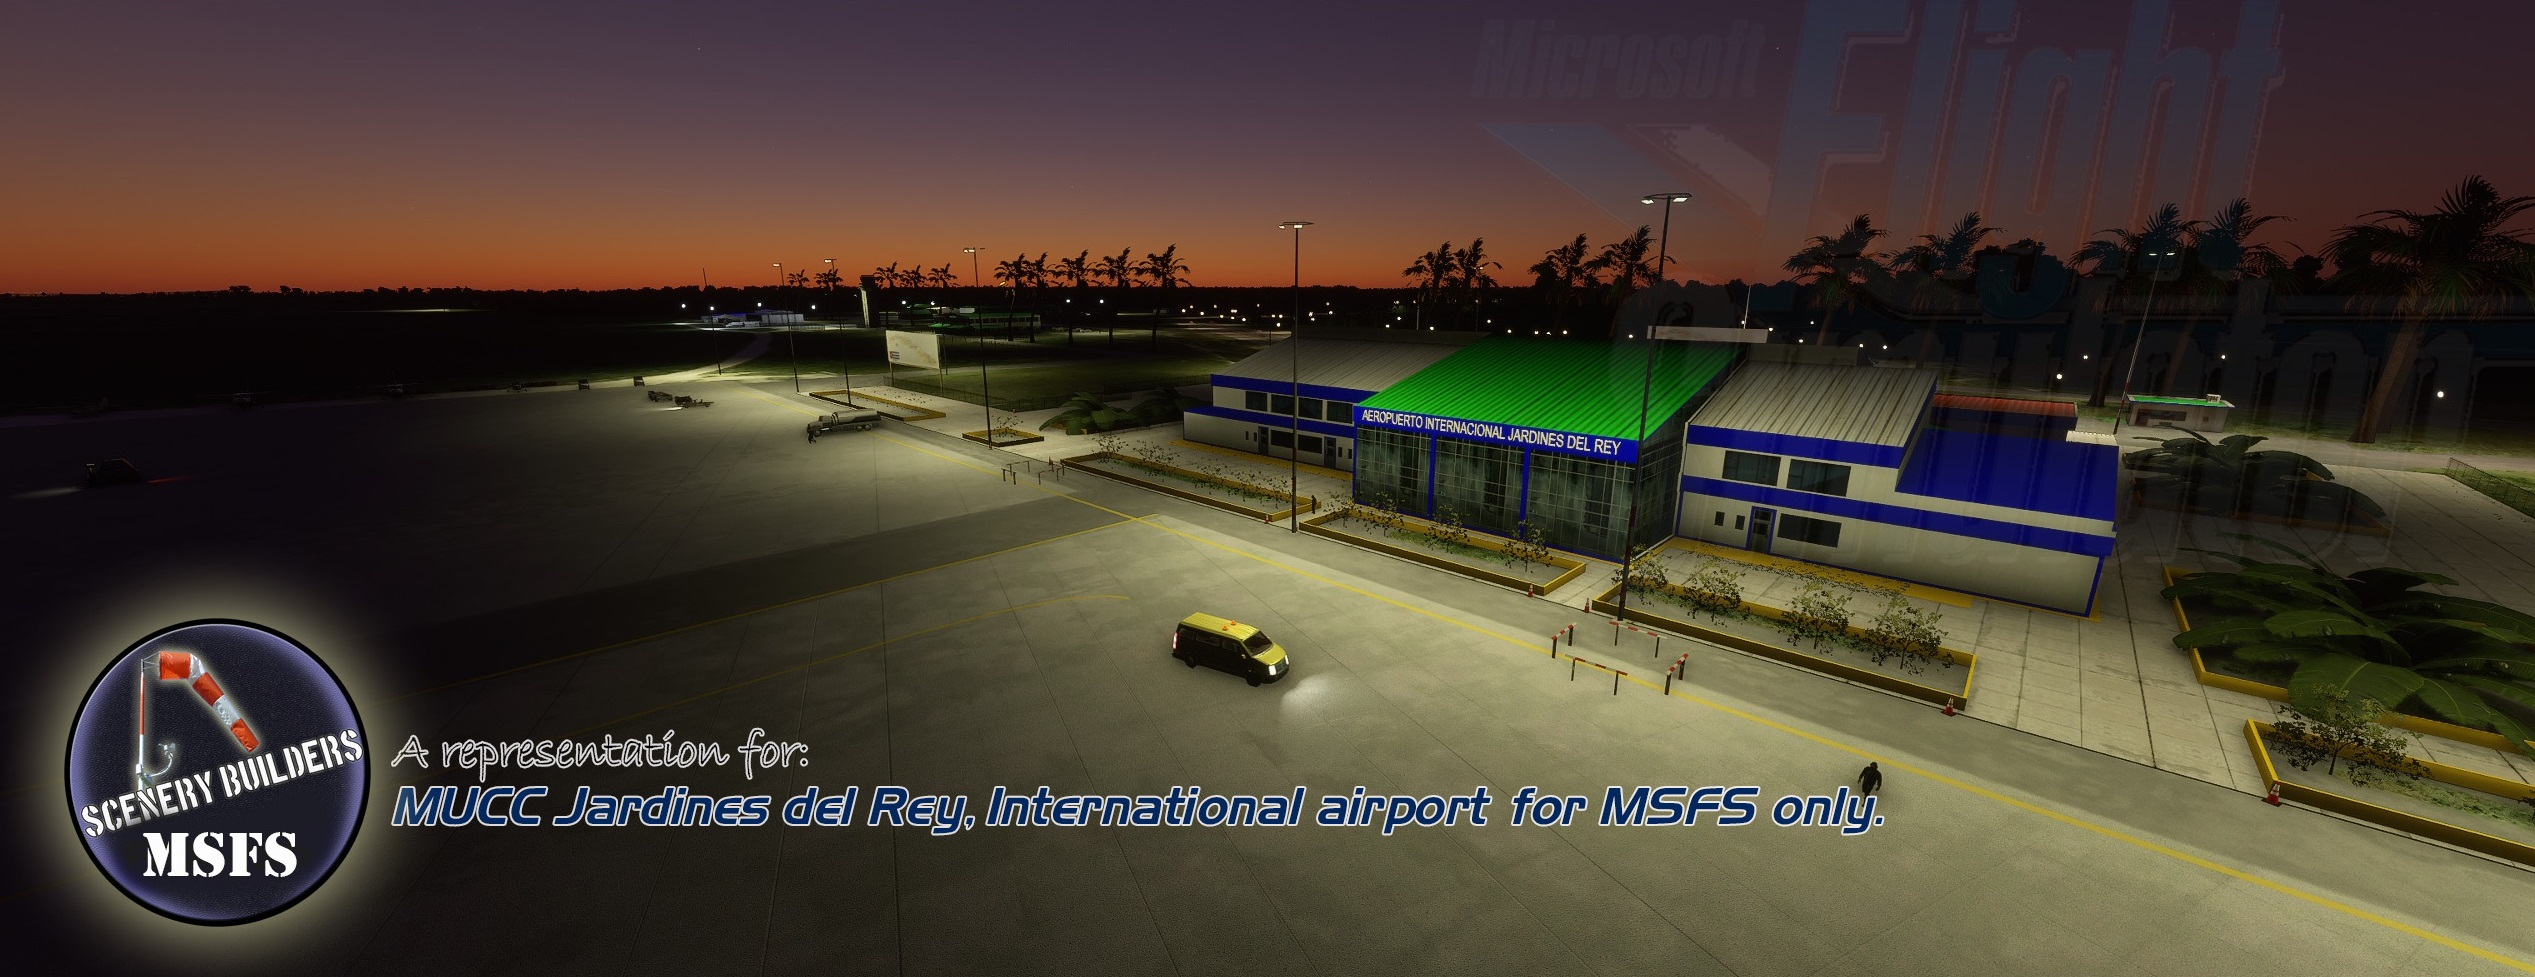 FSXCENERY - MUCC JARDINES DEL REY FOR MSFS ONLY